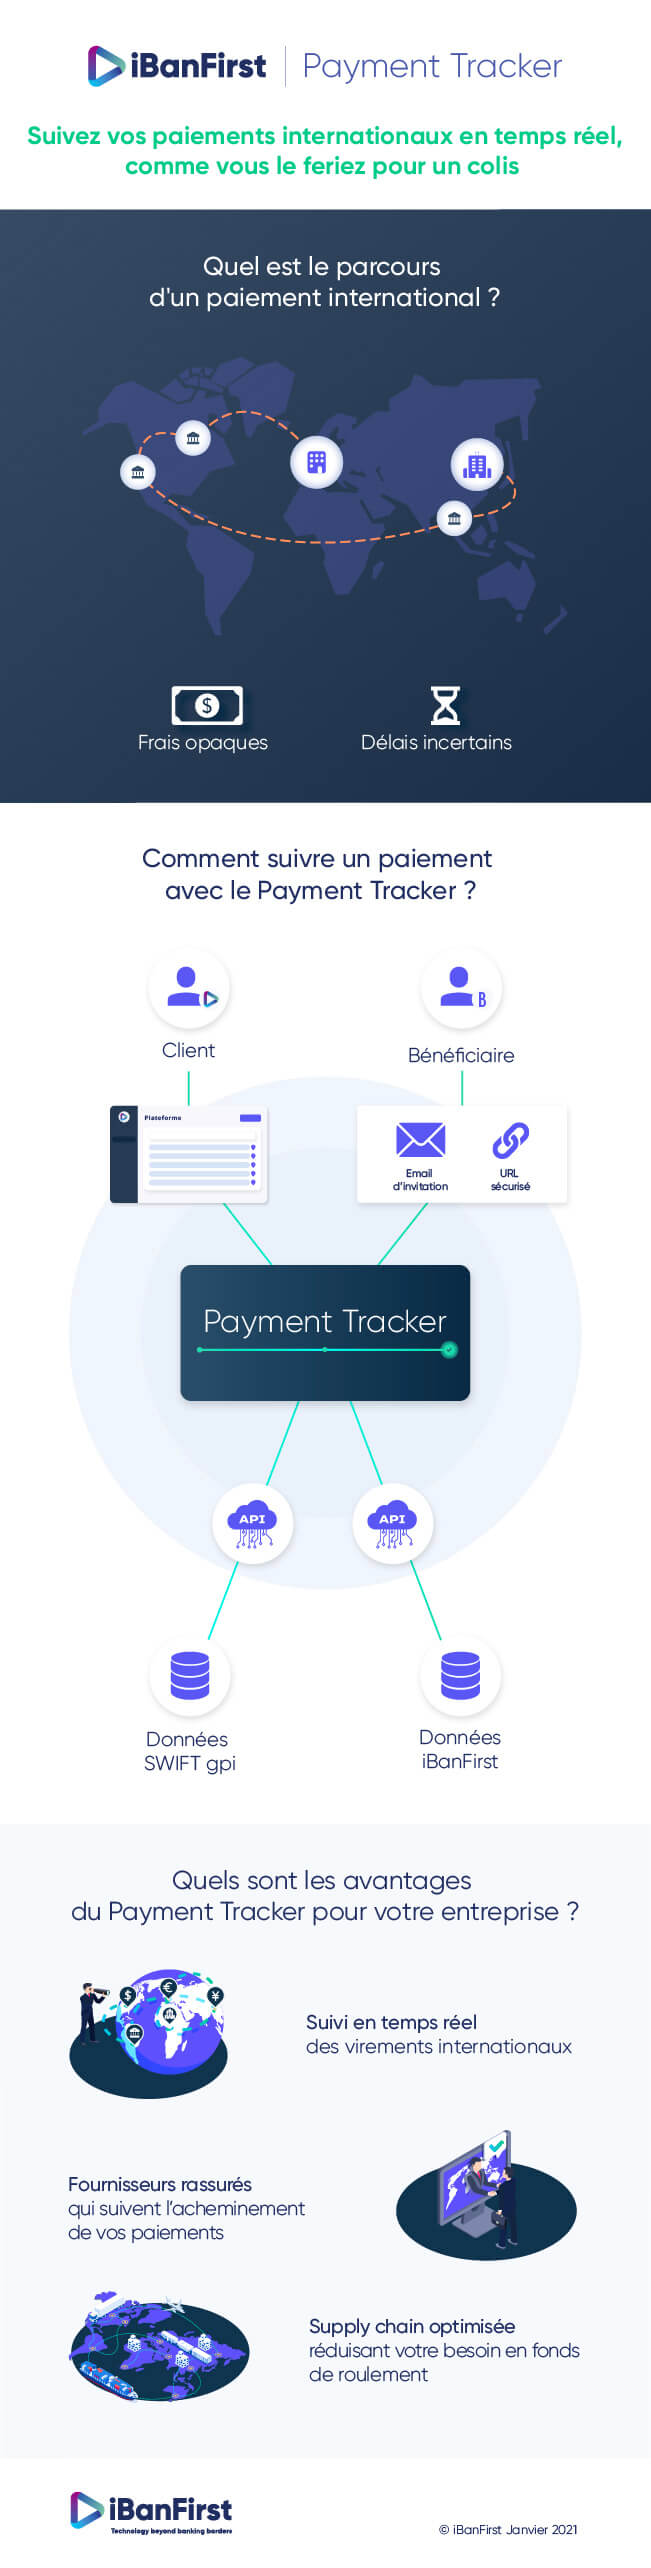 infographie-Payment-tracker-FR